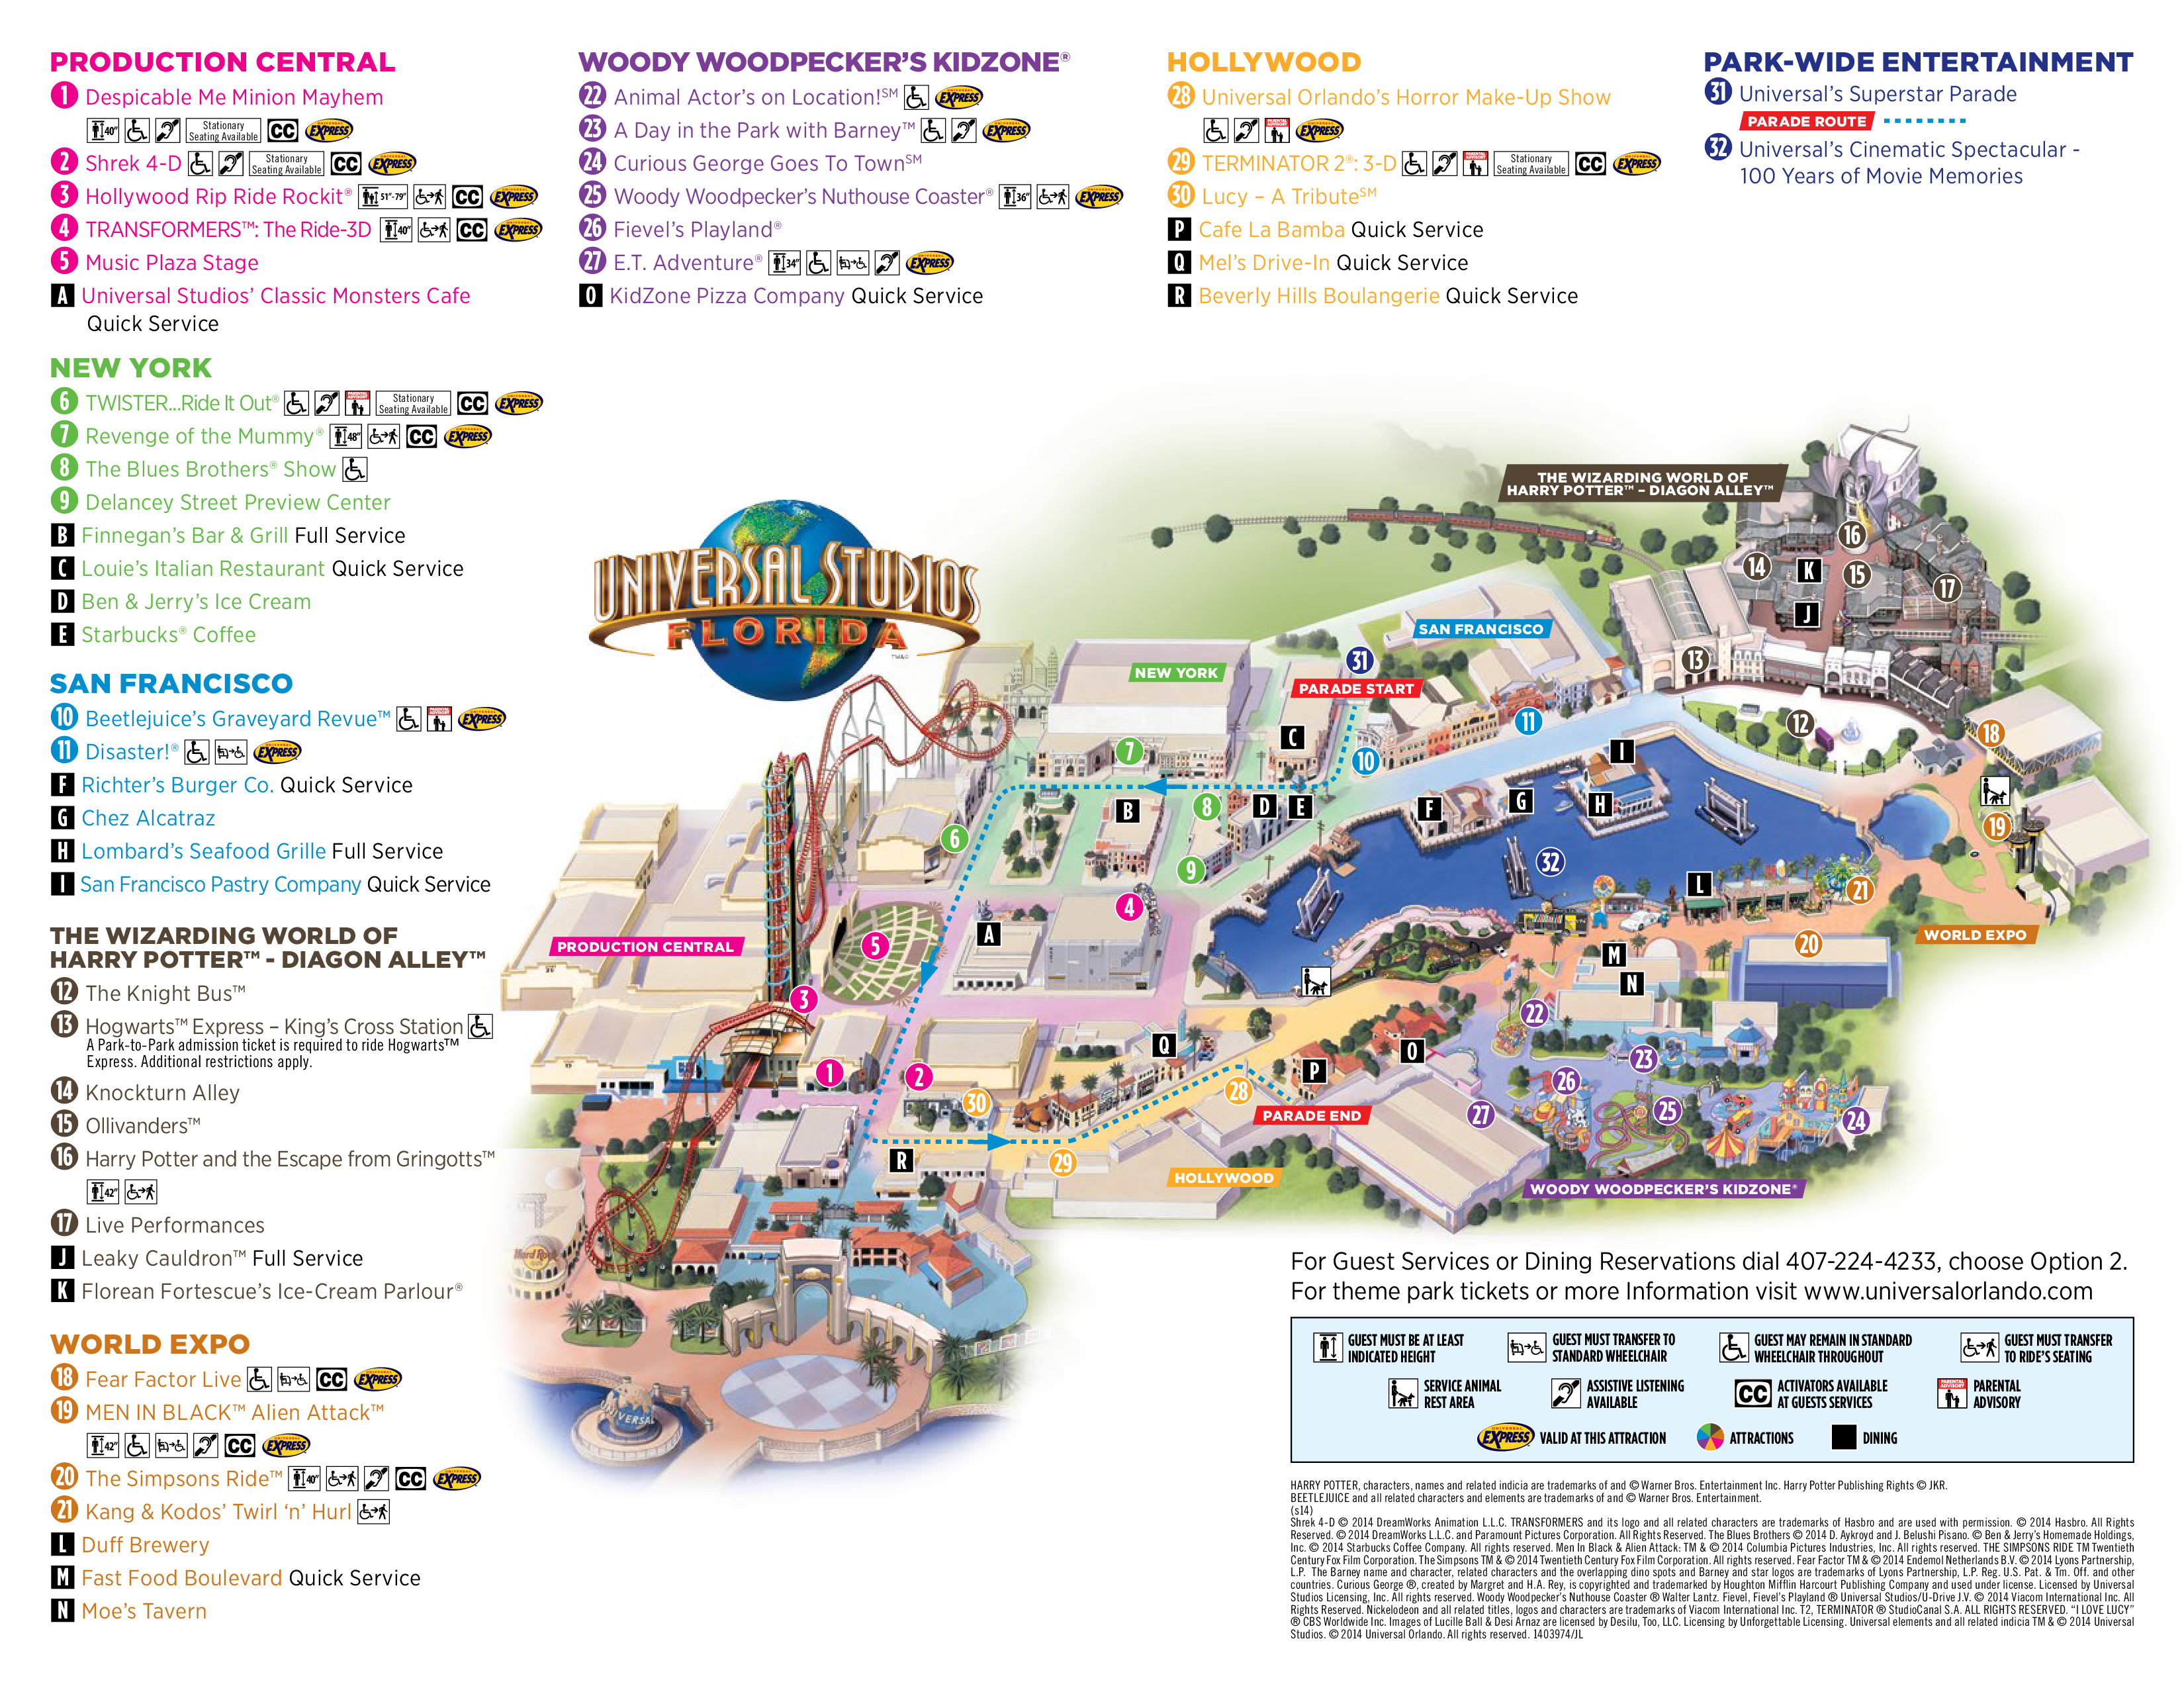 ... Studios Hollywood Map 2016. View Original . [Updated on 02/11/2016 at